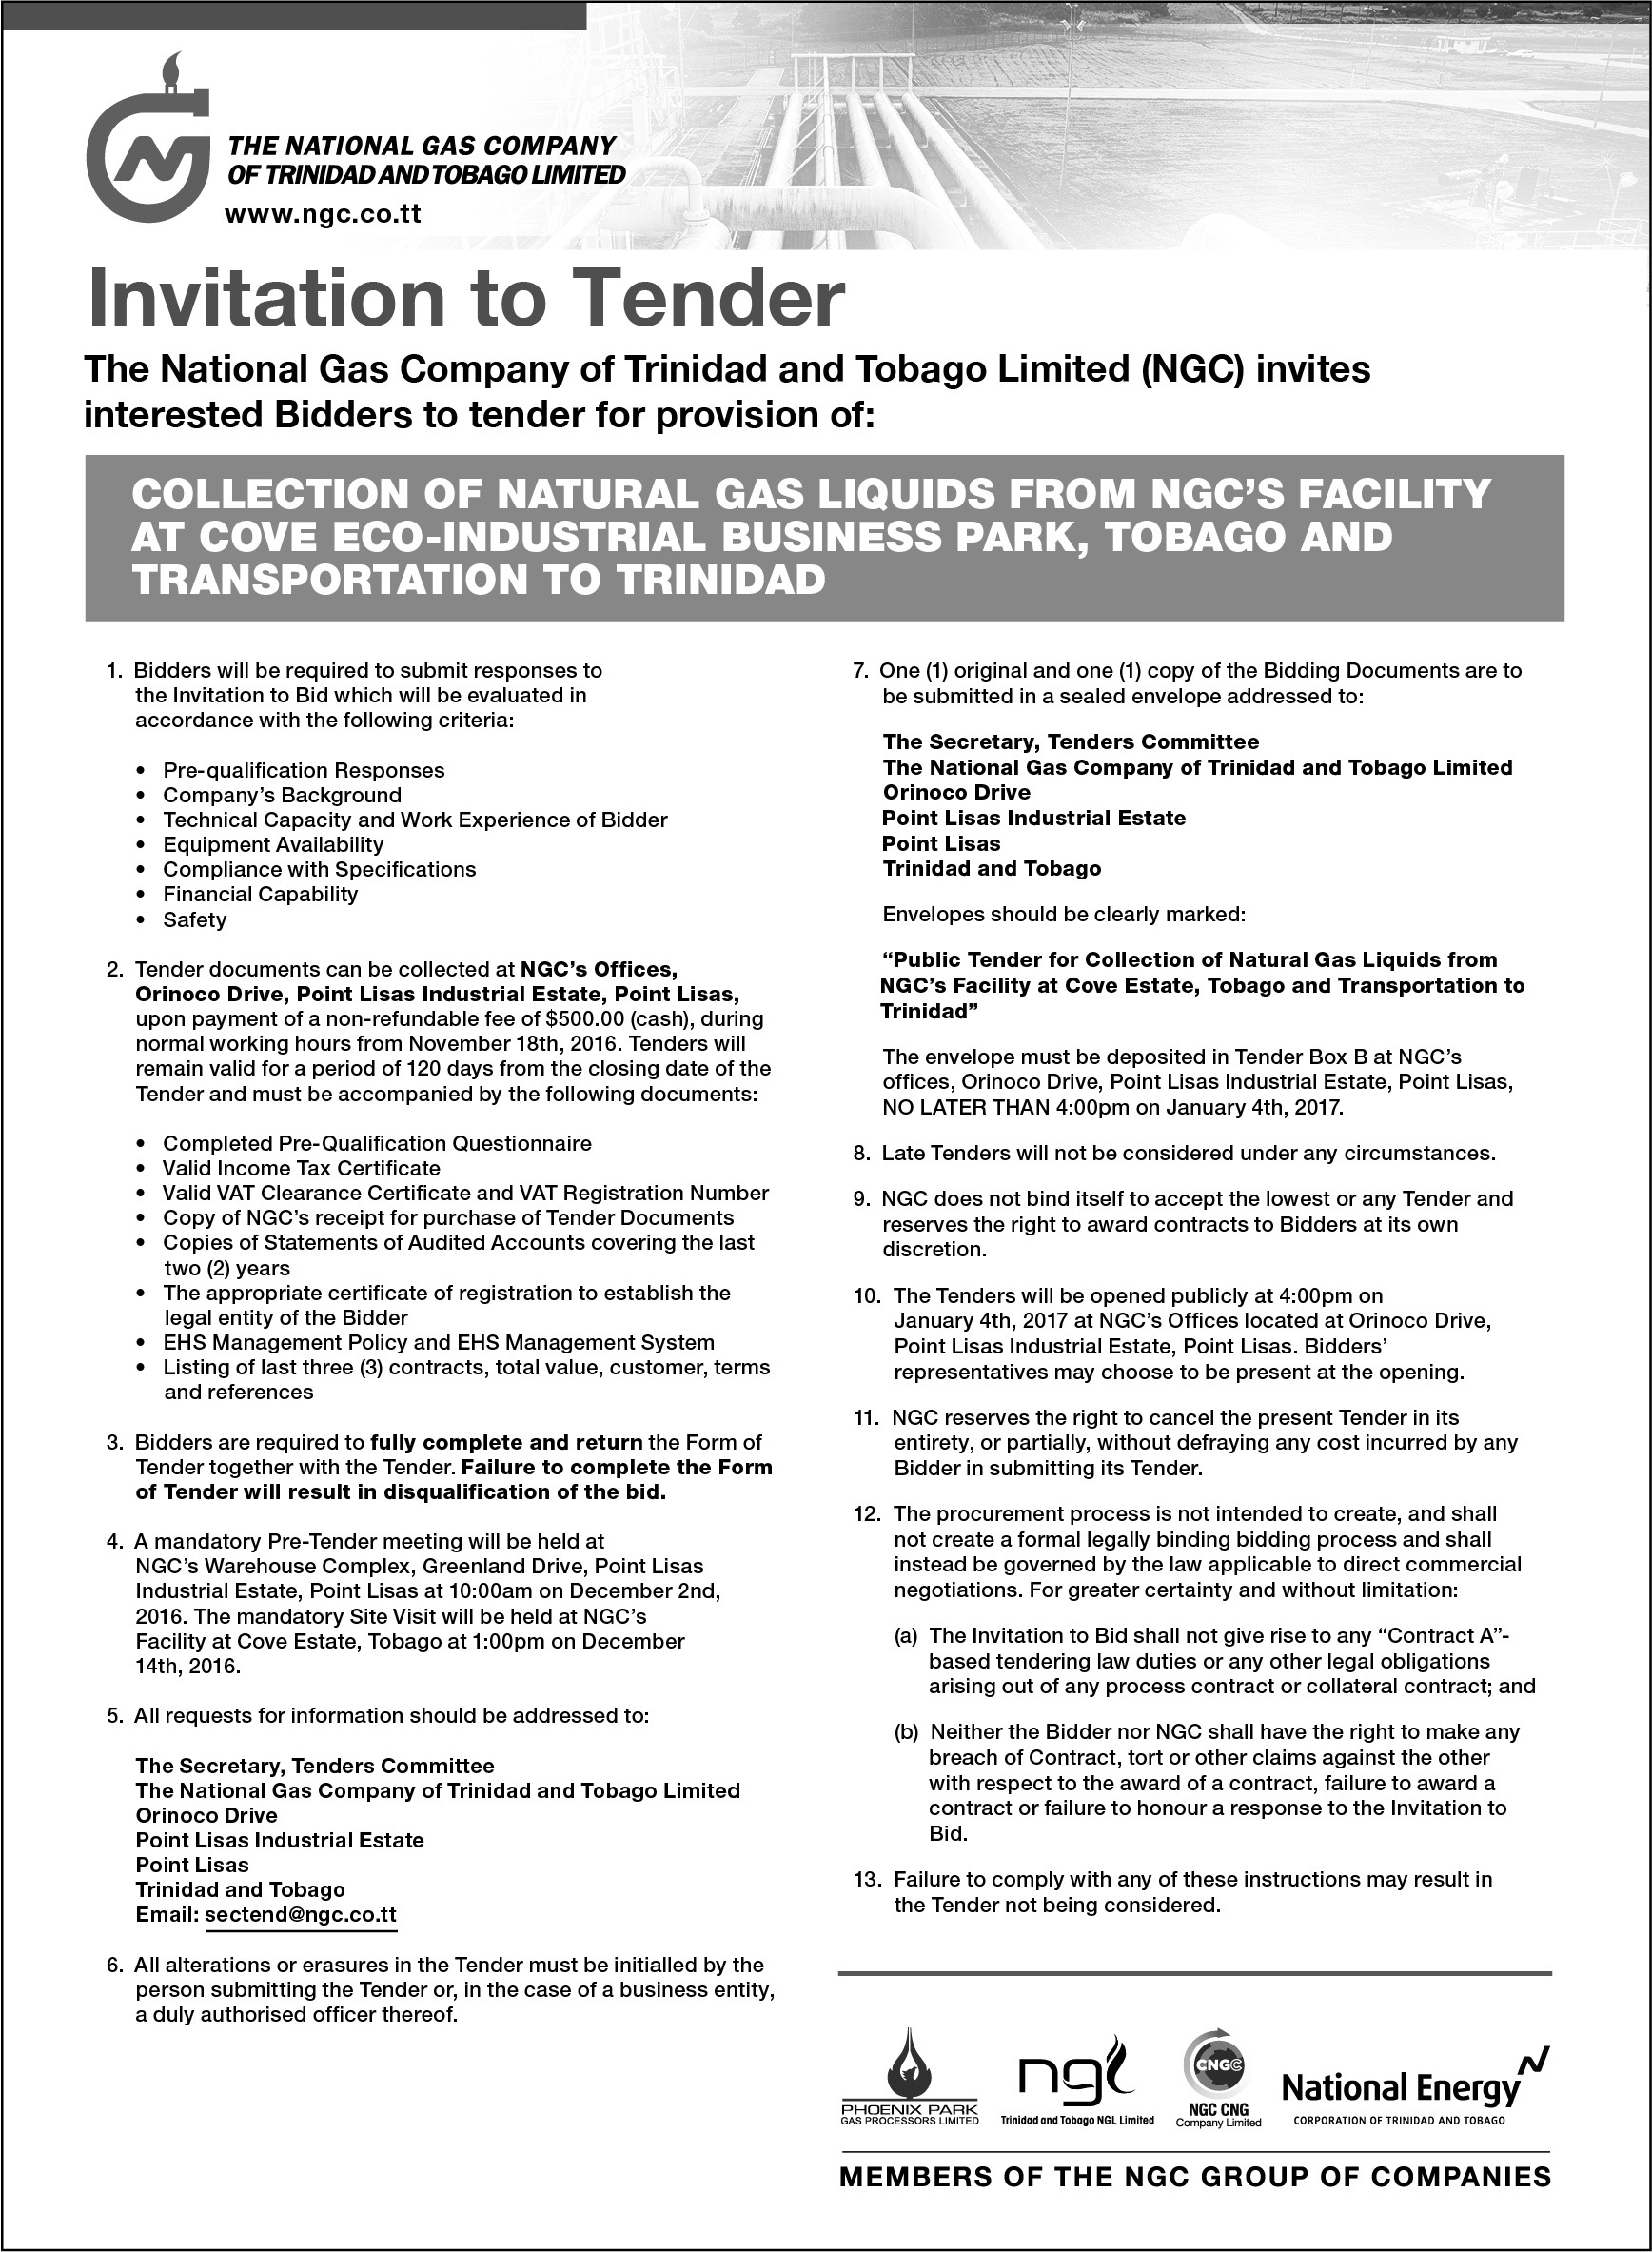 tender document for in-line inspection